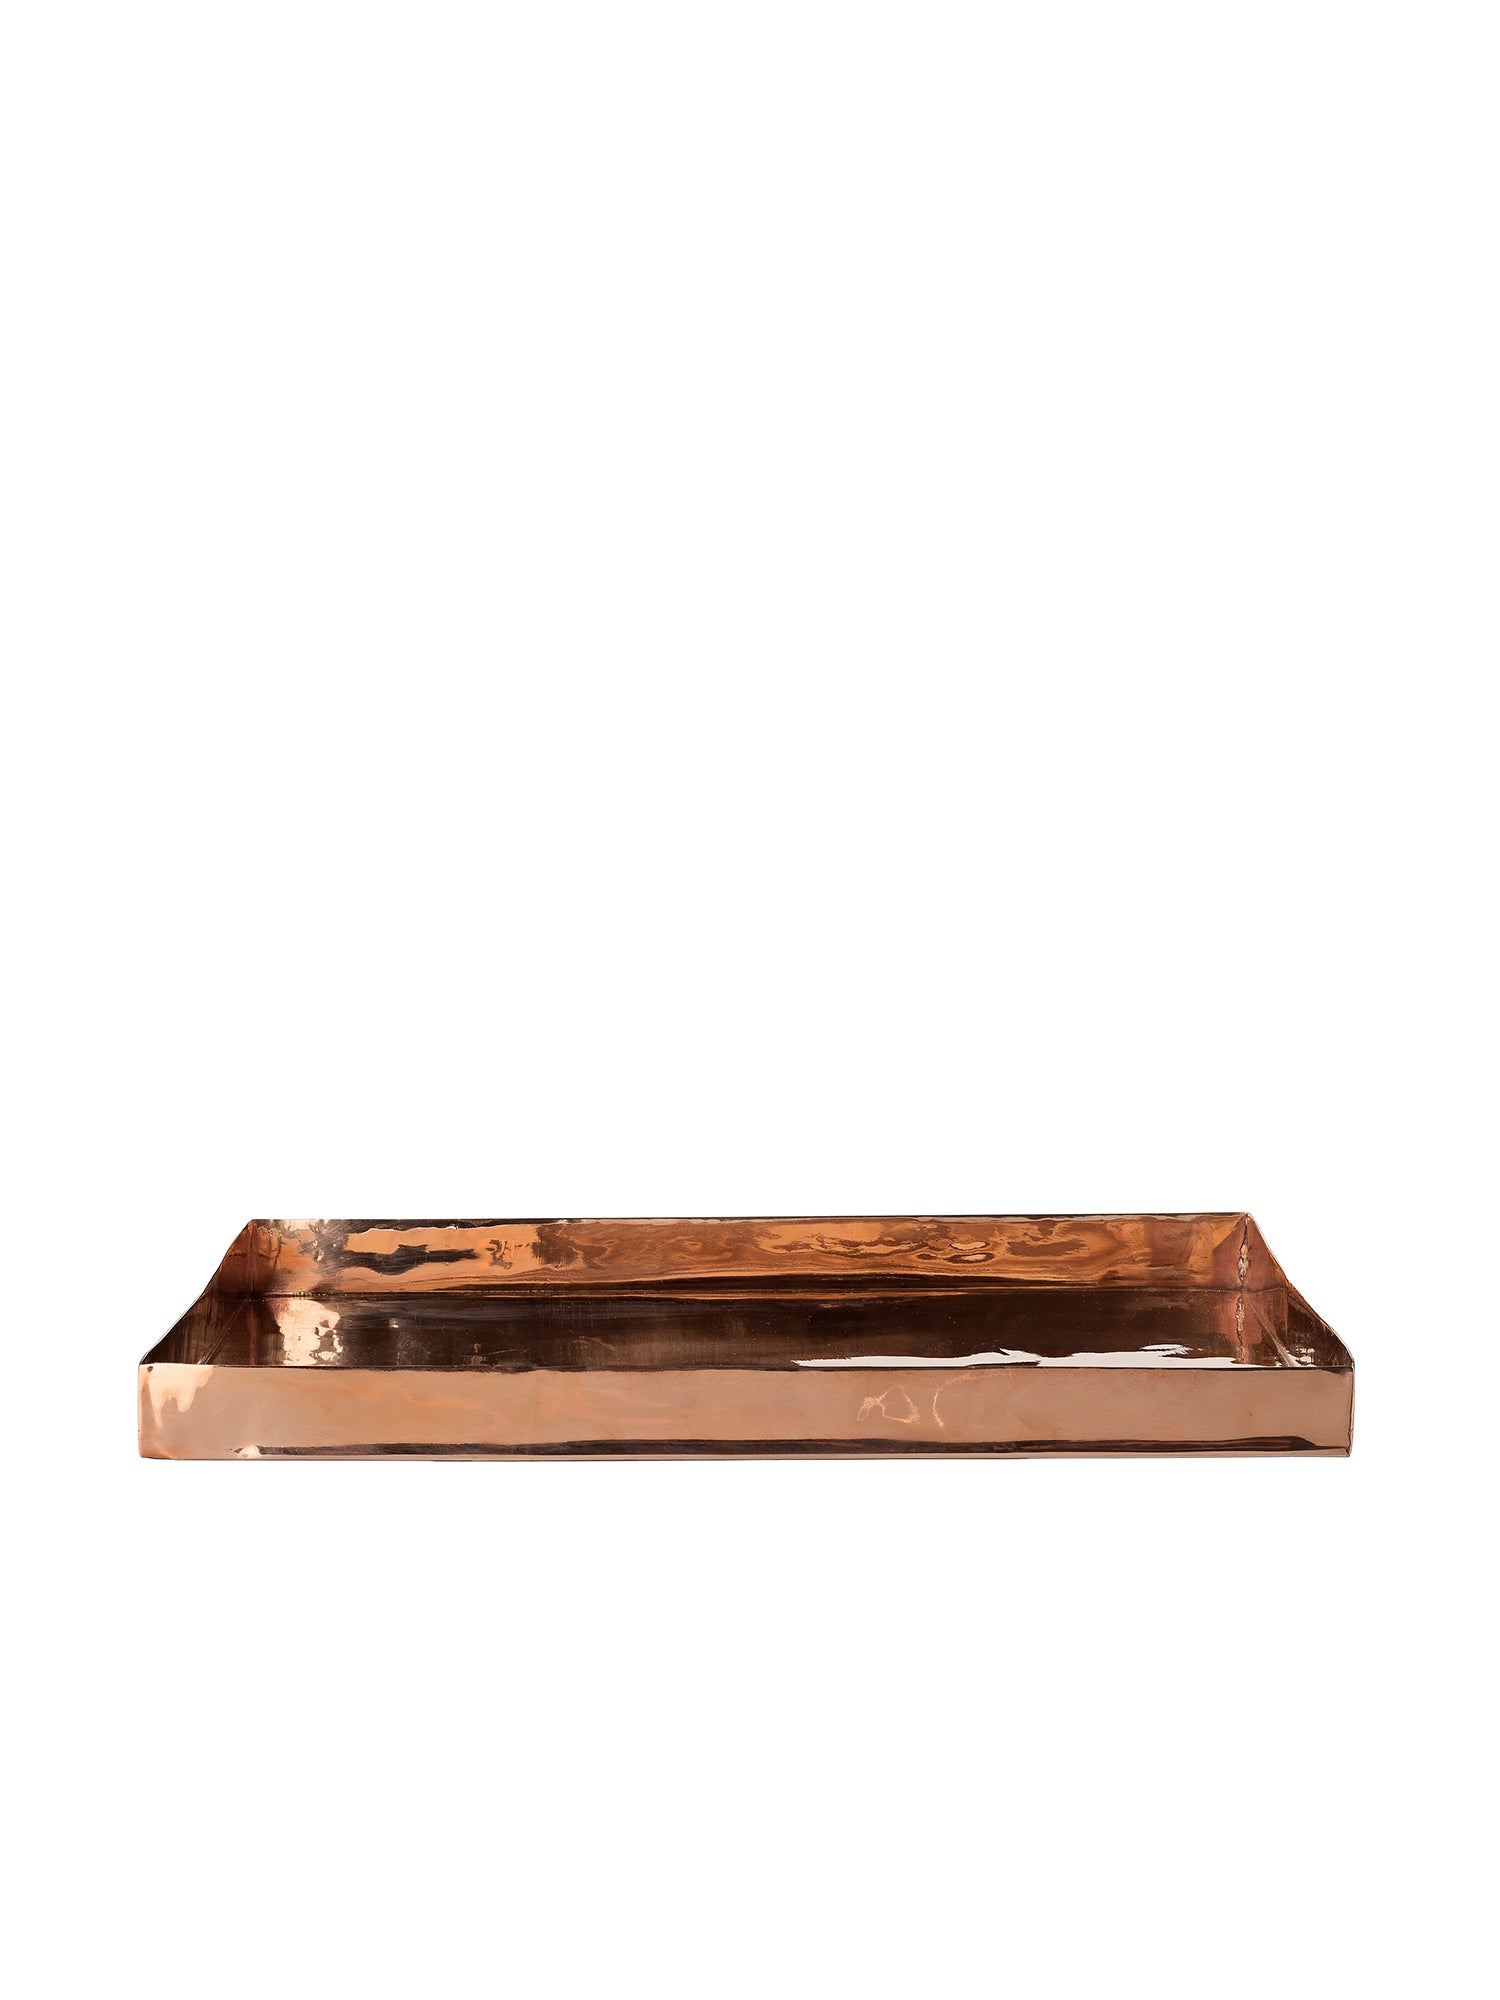 Copper Tray, Metal #27800005